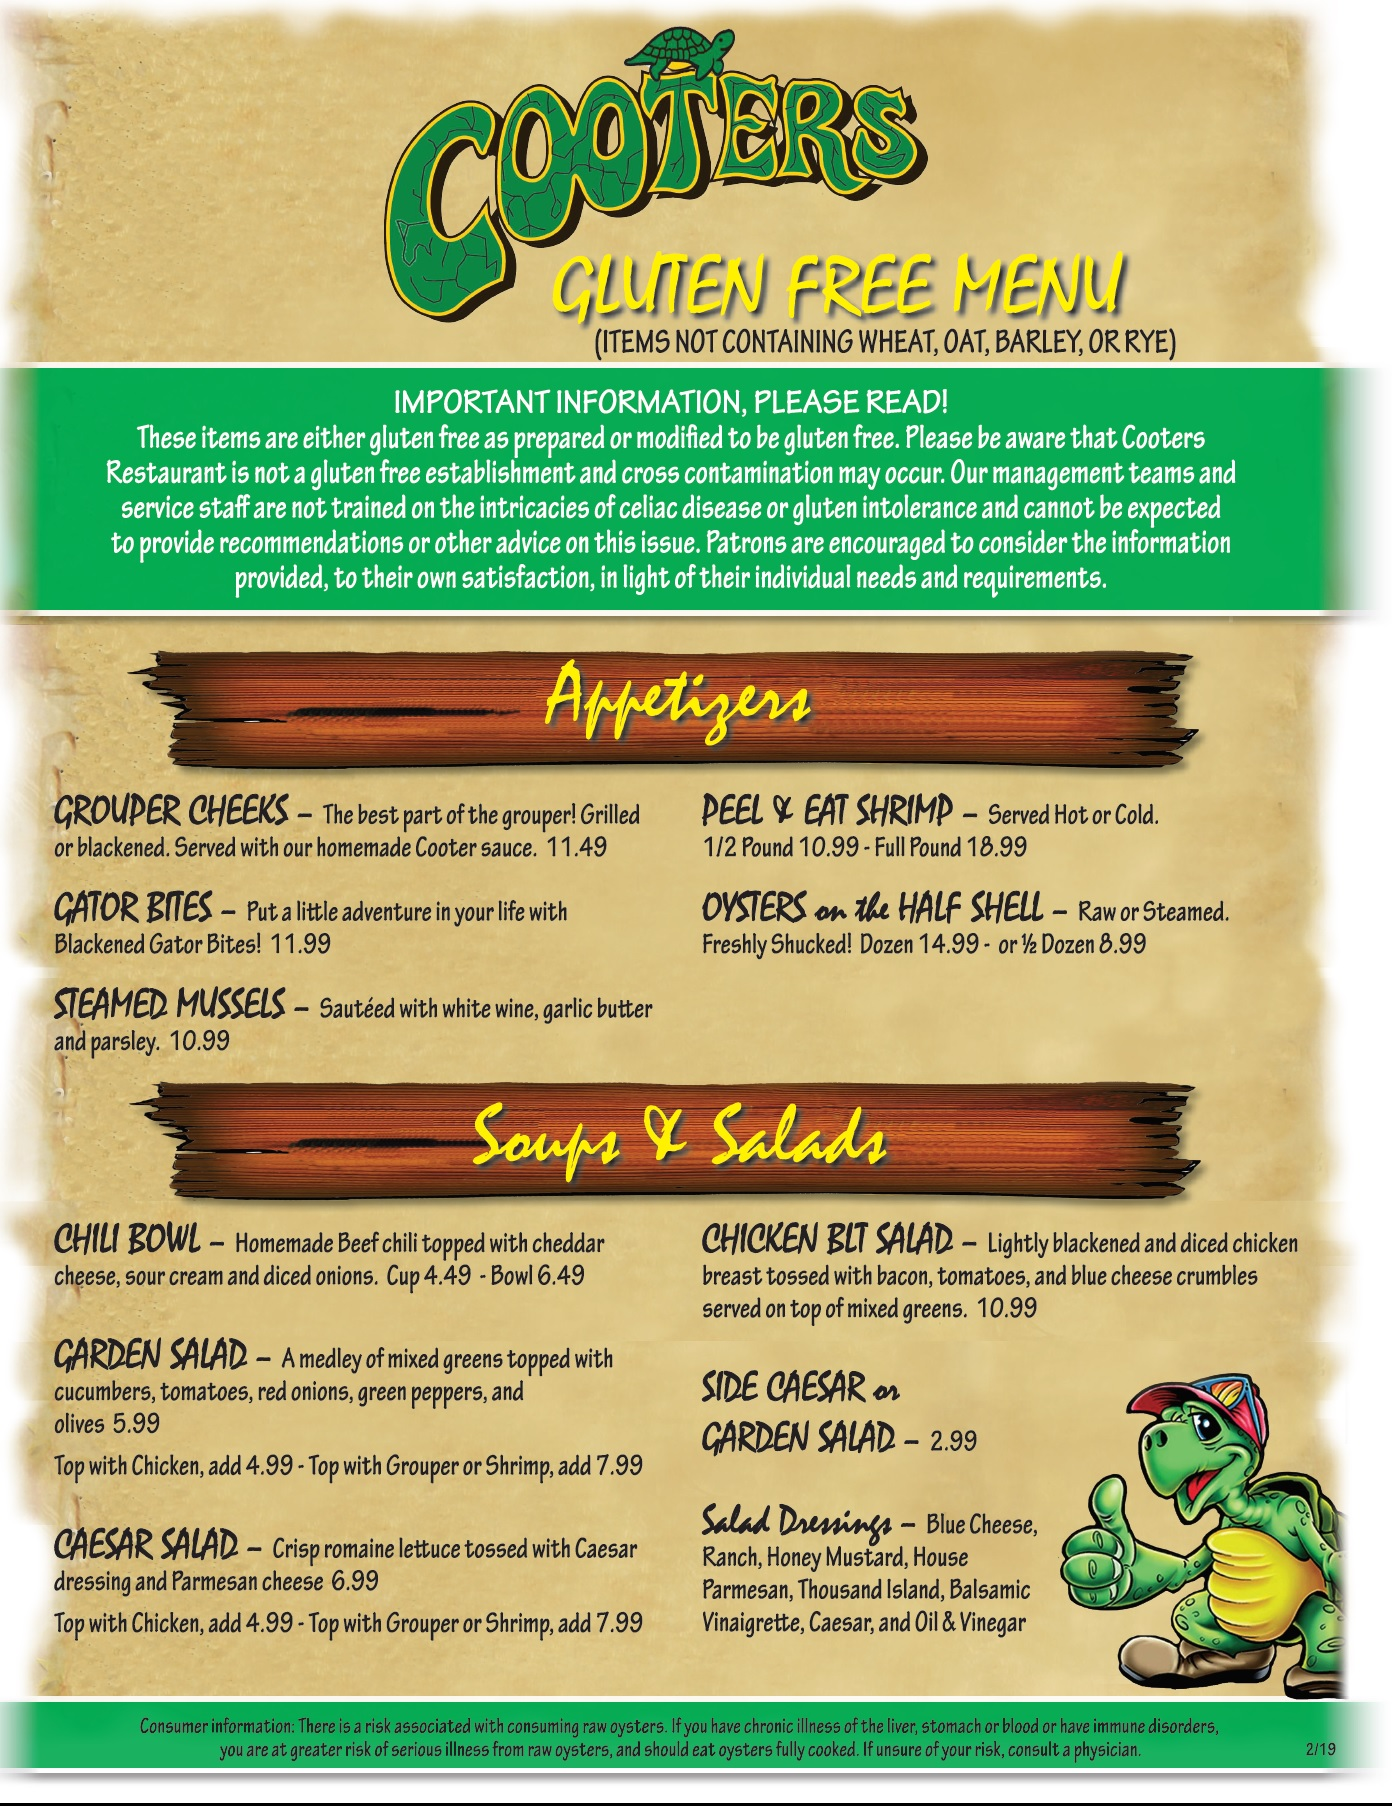 Cooters Restaurant and Bar Menu - Come to Cooters for the